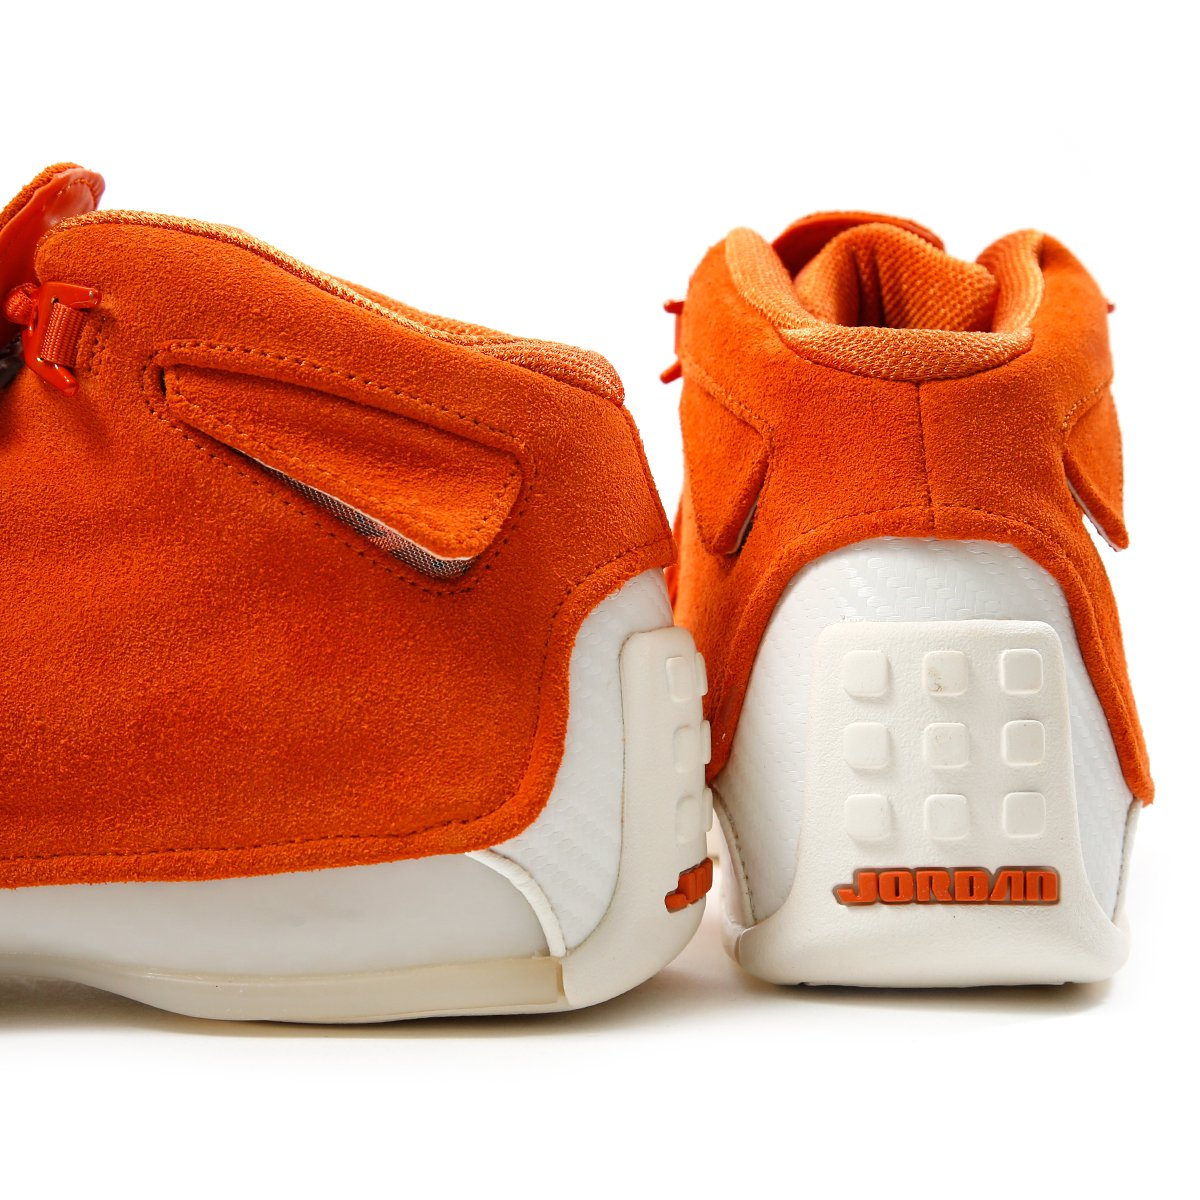 6d91bbd46eaf Air Jordan 18 Retro (Campfire Orange Campfire Orange-Sail)